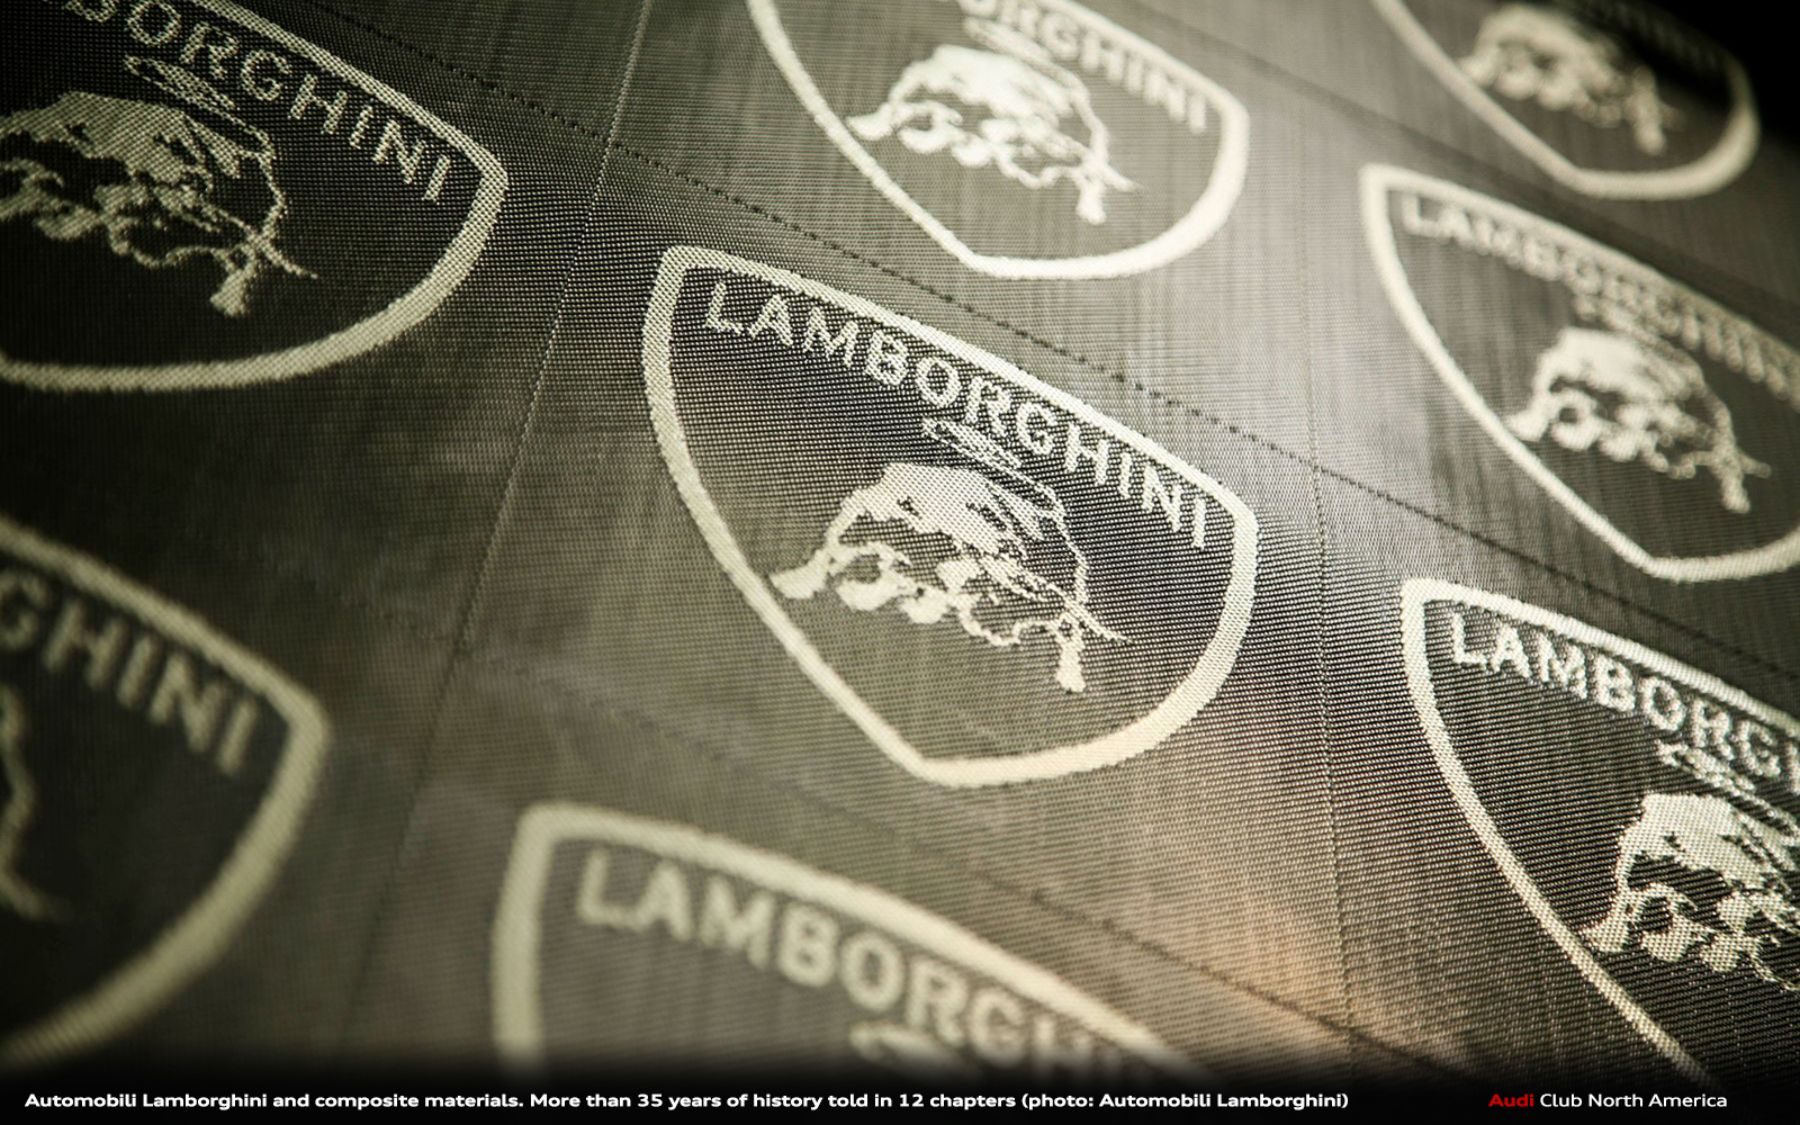 Automobili Lamborghini and Composite Materials. More Than 35 Years of History Told in 12 Chapters